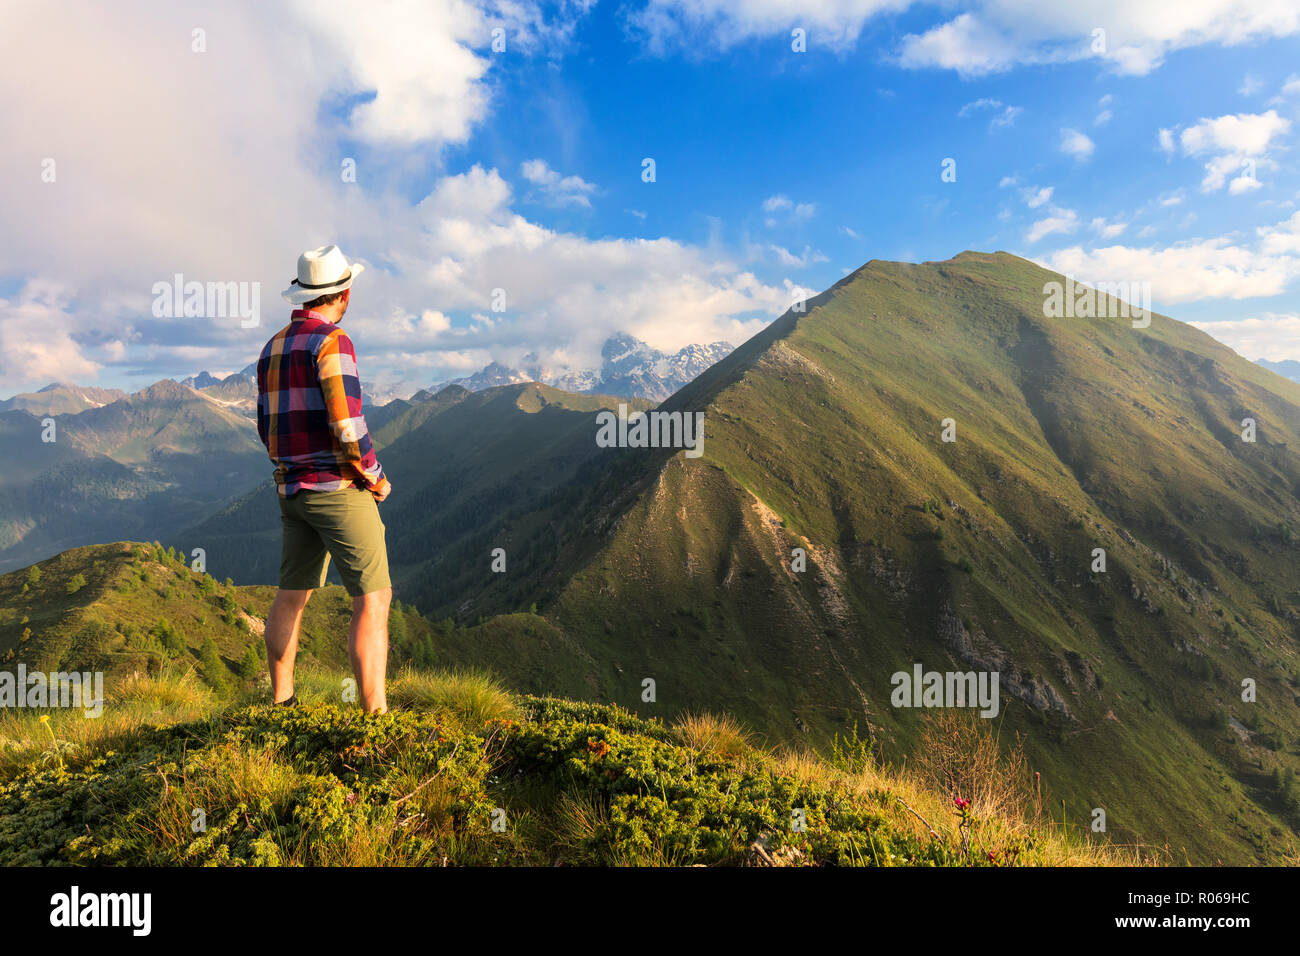 Man on top of Monte Rolla looks to Monte Disgrazia and Sasso Canale, Sondrio province, Valtellina, Lombardy, Italy, Europe - Stock Image